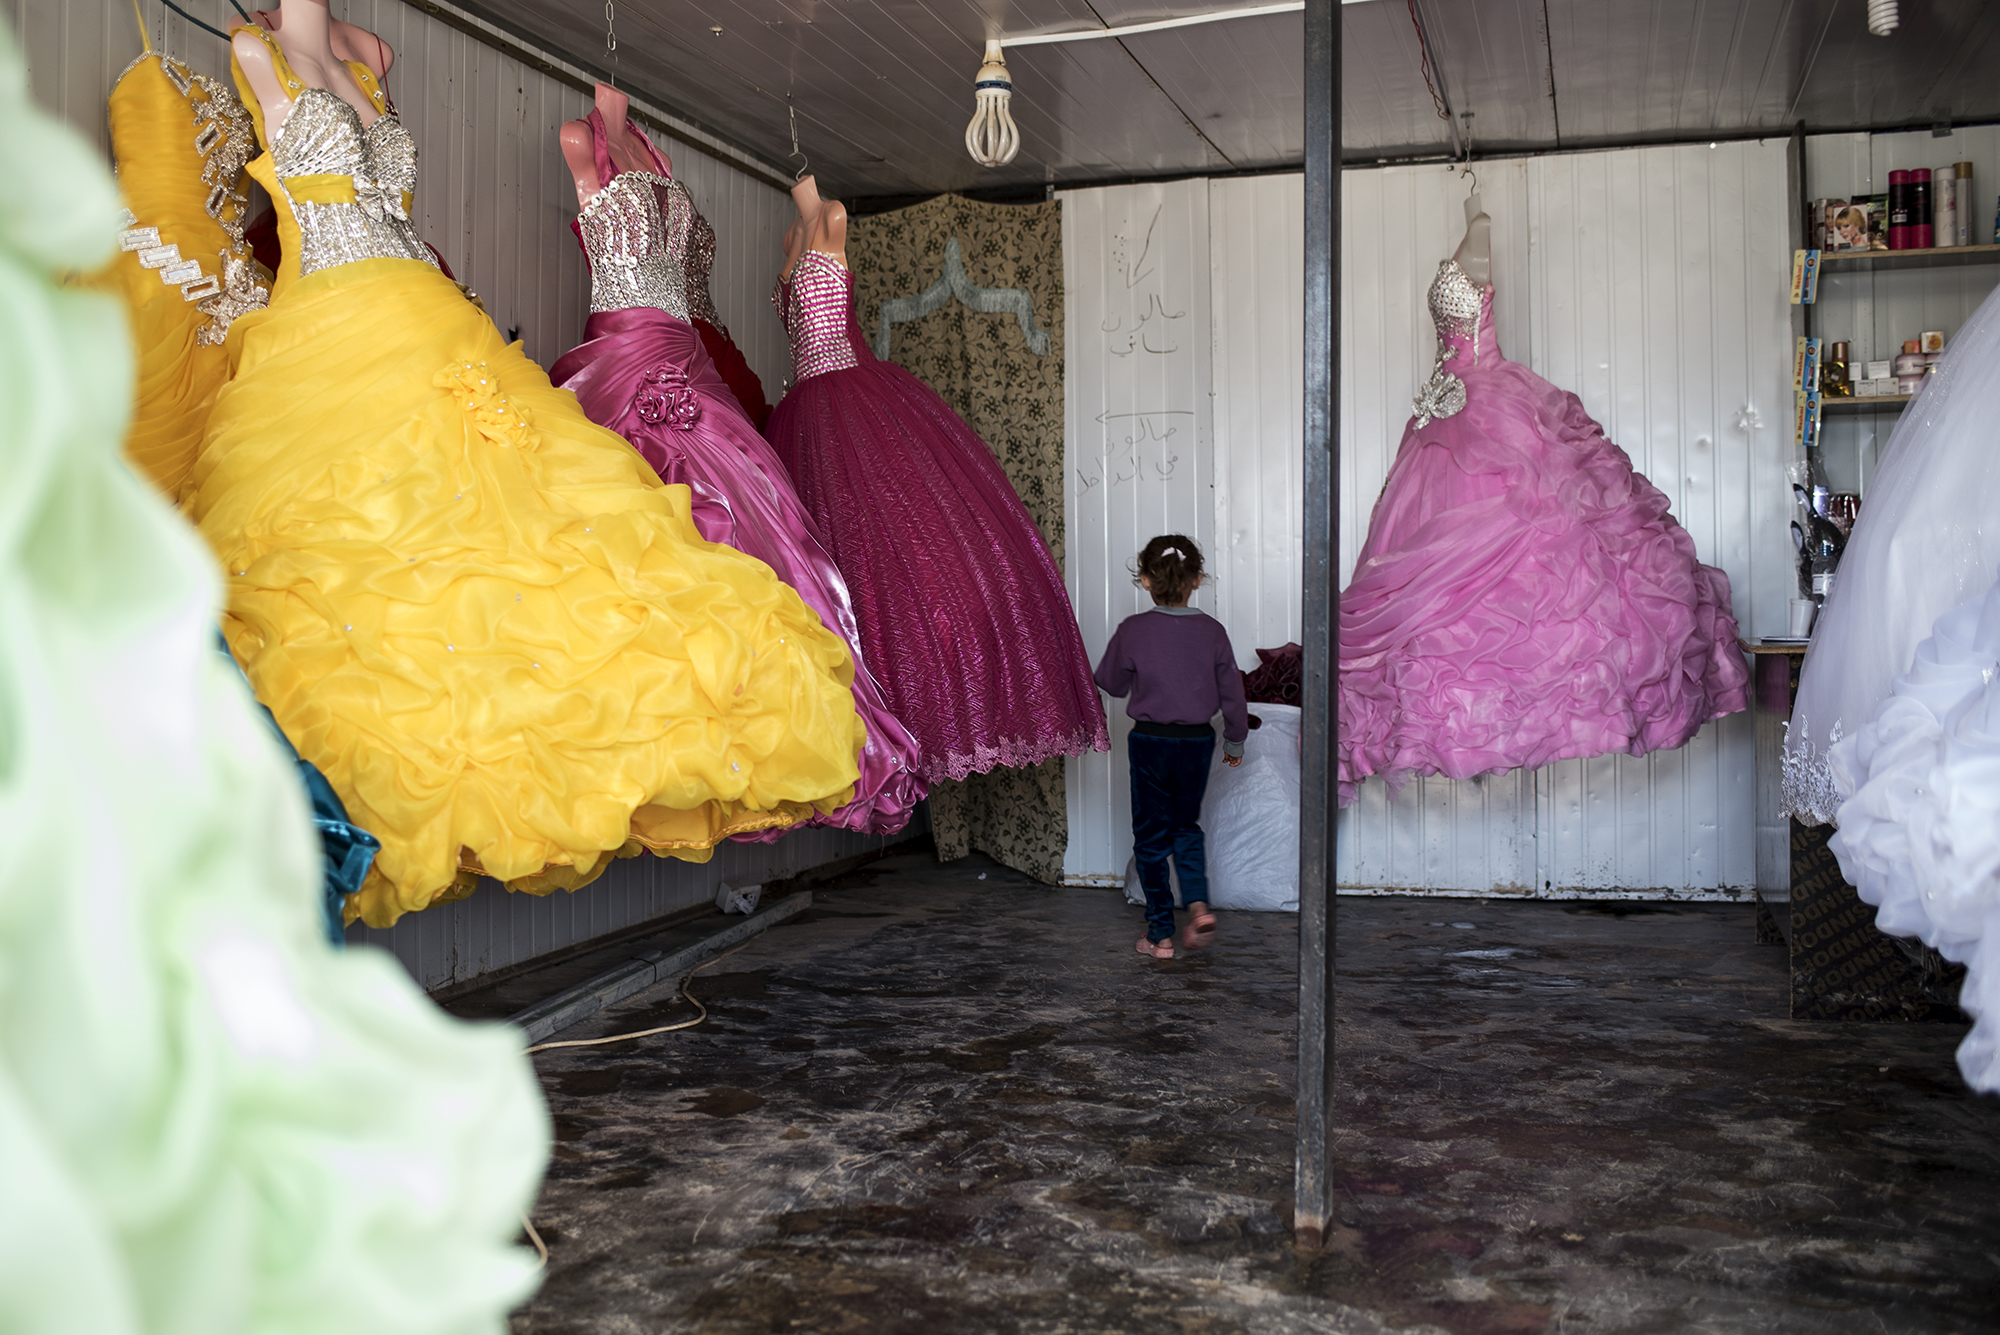 A child walks through a wedding dress shop in the central market of Jordan's Zaatari refugee camp, October 2015.